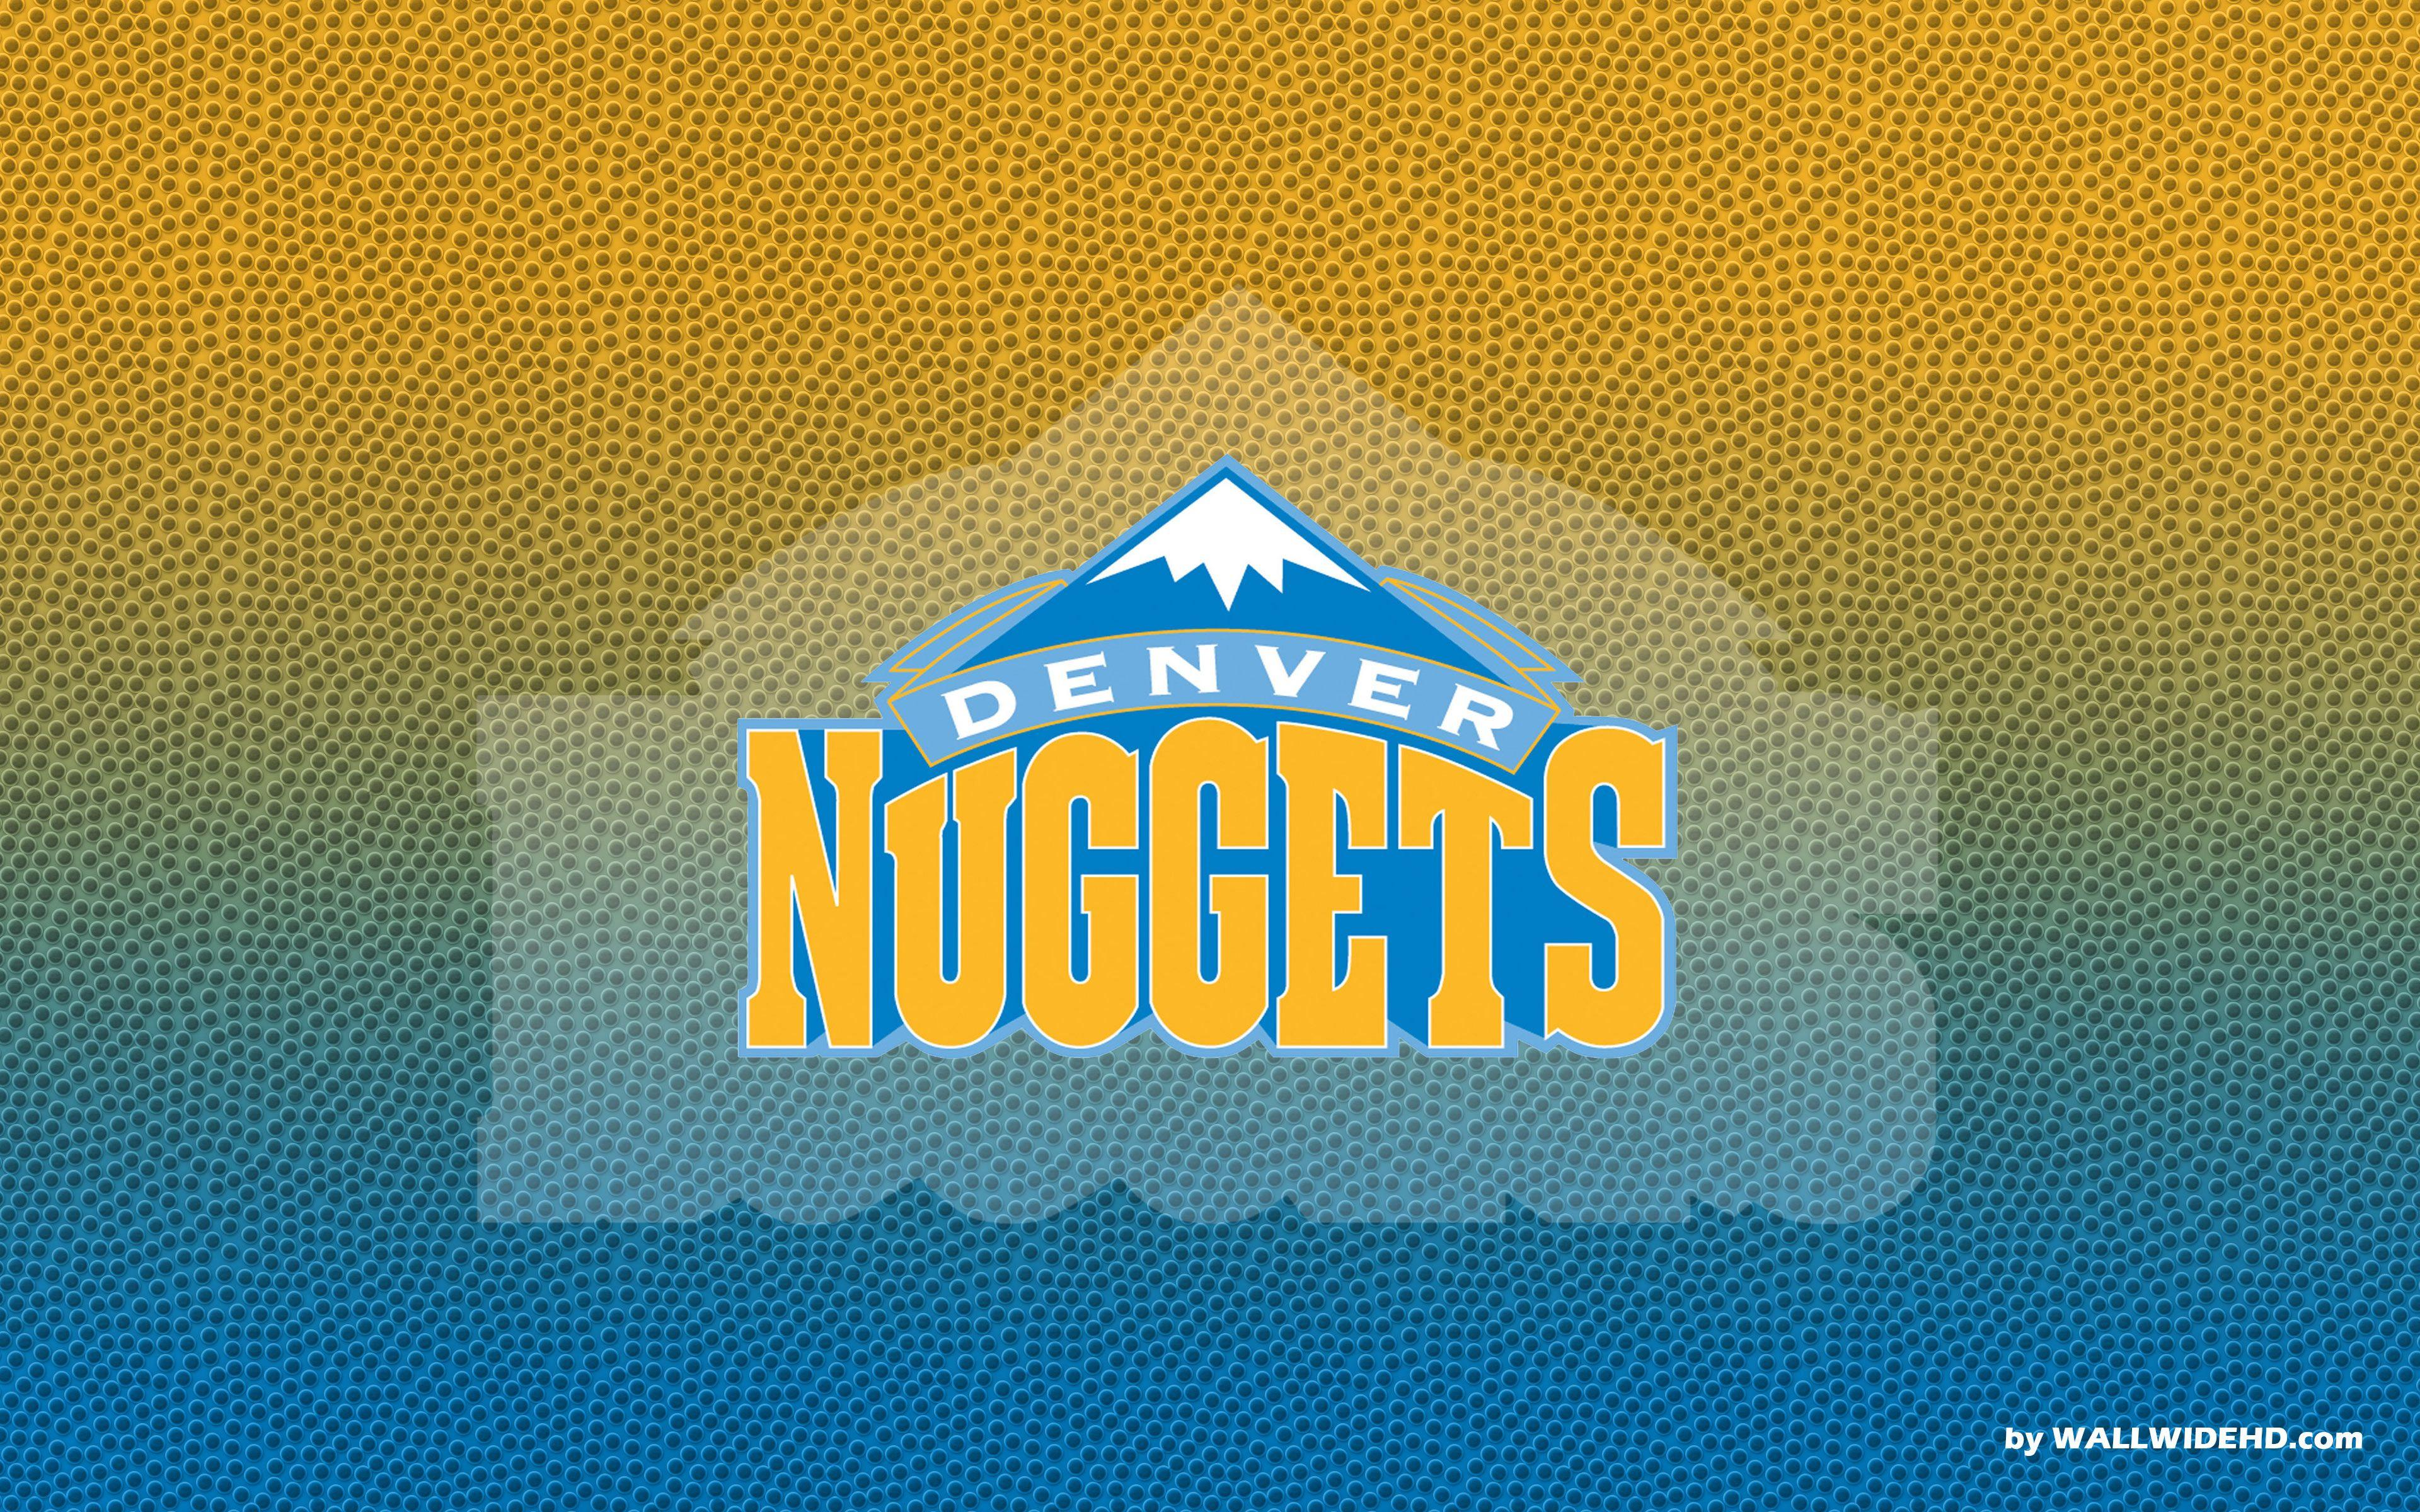 Awesome Denver Nuggets HQ Photos | World's Greatest Art Site